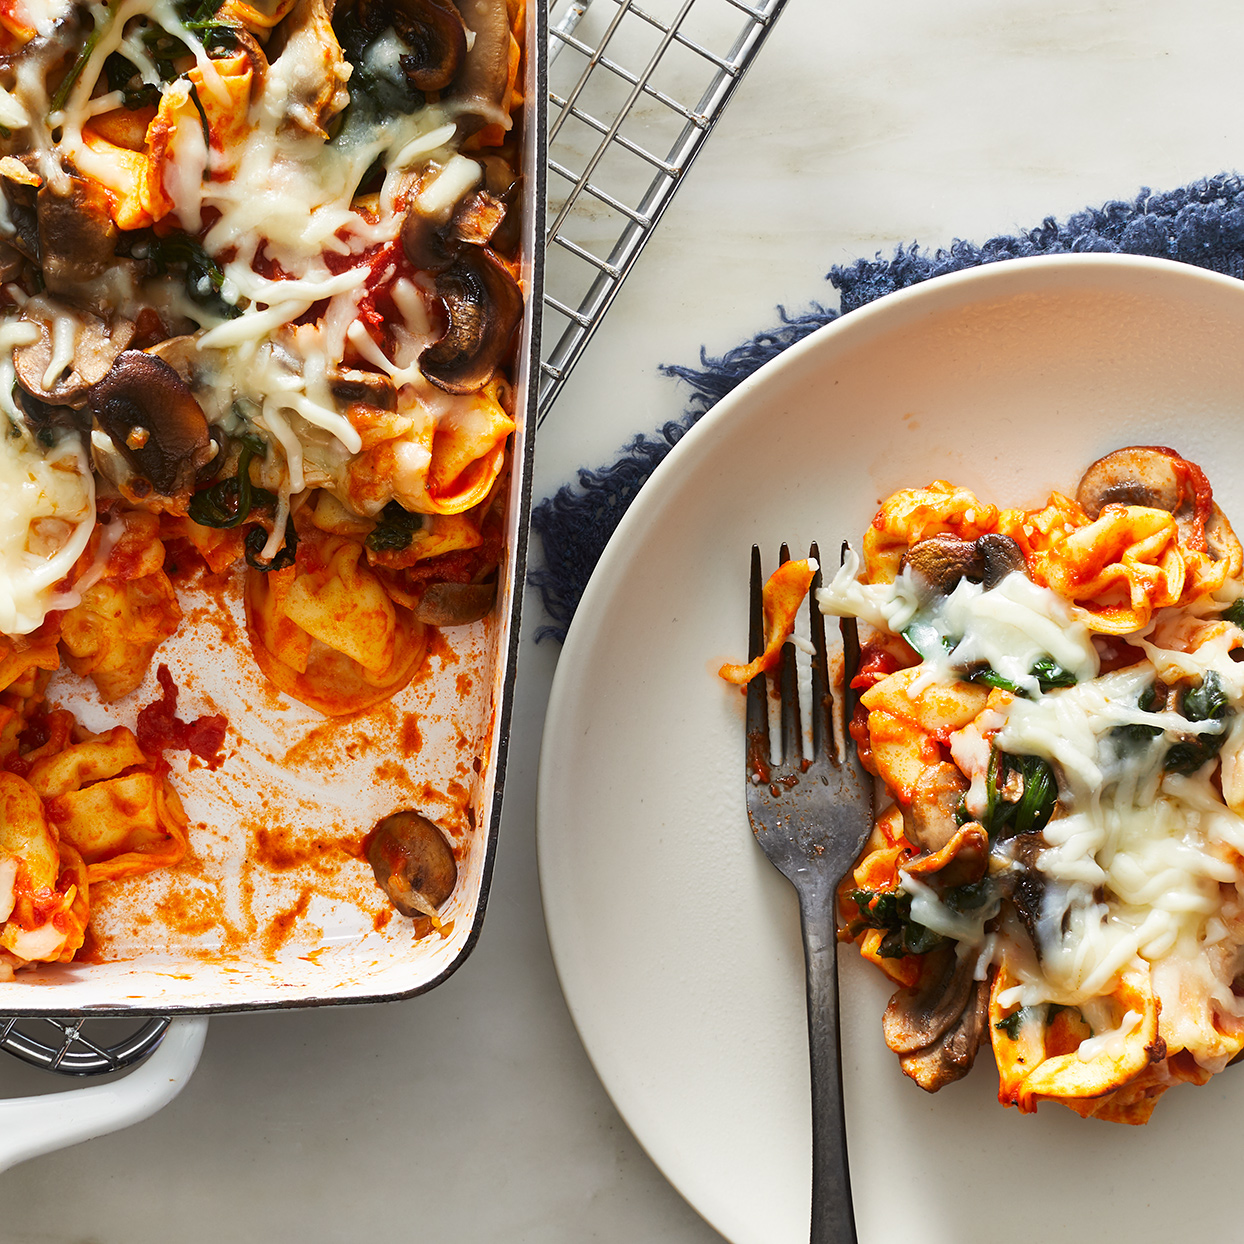 This cheesy tortellini bake is a dish the whole family will love—it's filled with sweet-tasting marinara, mushrooms and spinach and topped with melted cheese. Complete the meal, plus get in another vegetable serving, by adding a side of broccoli or a small green salad.